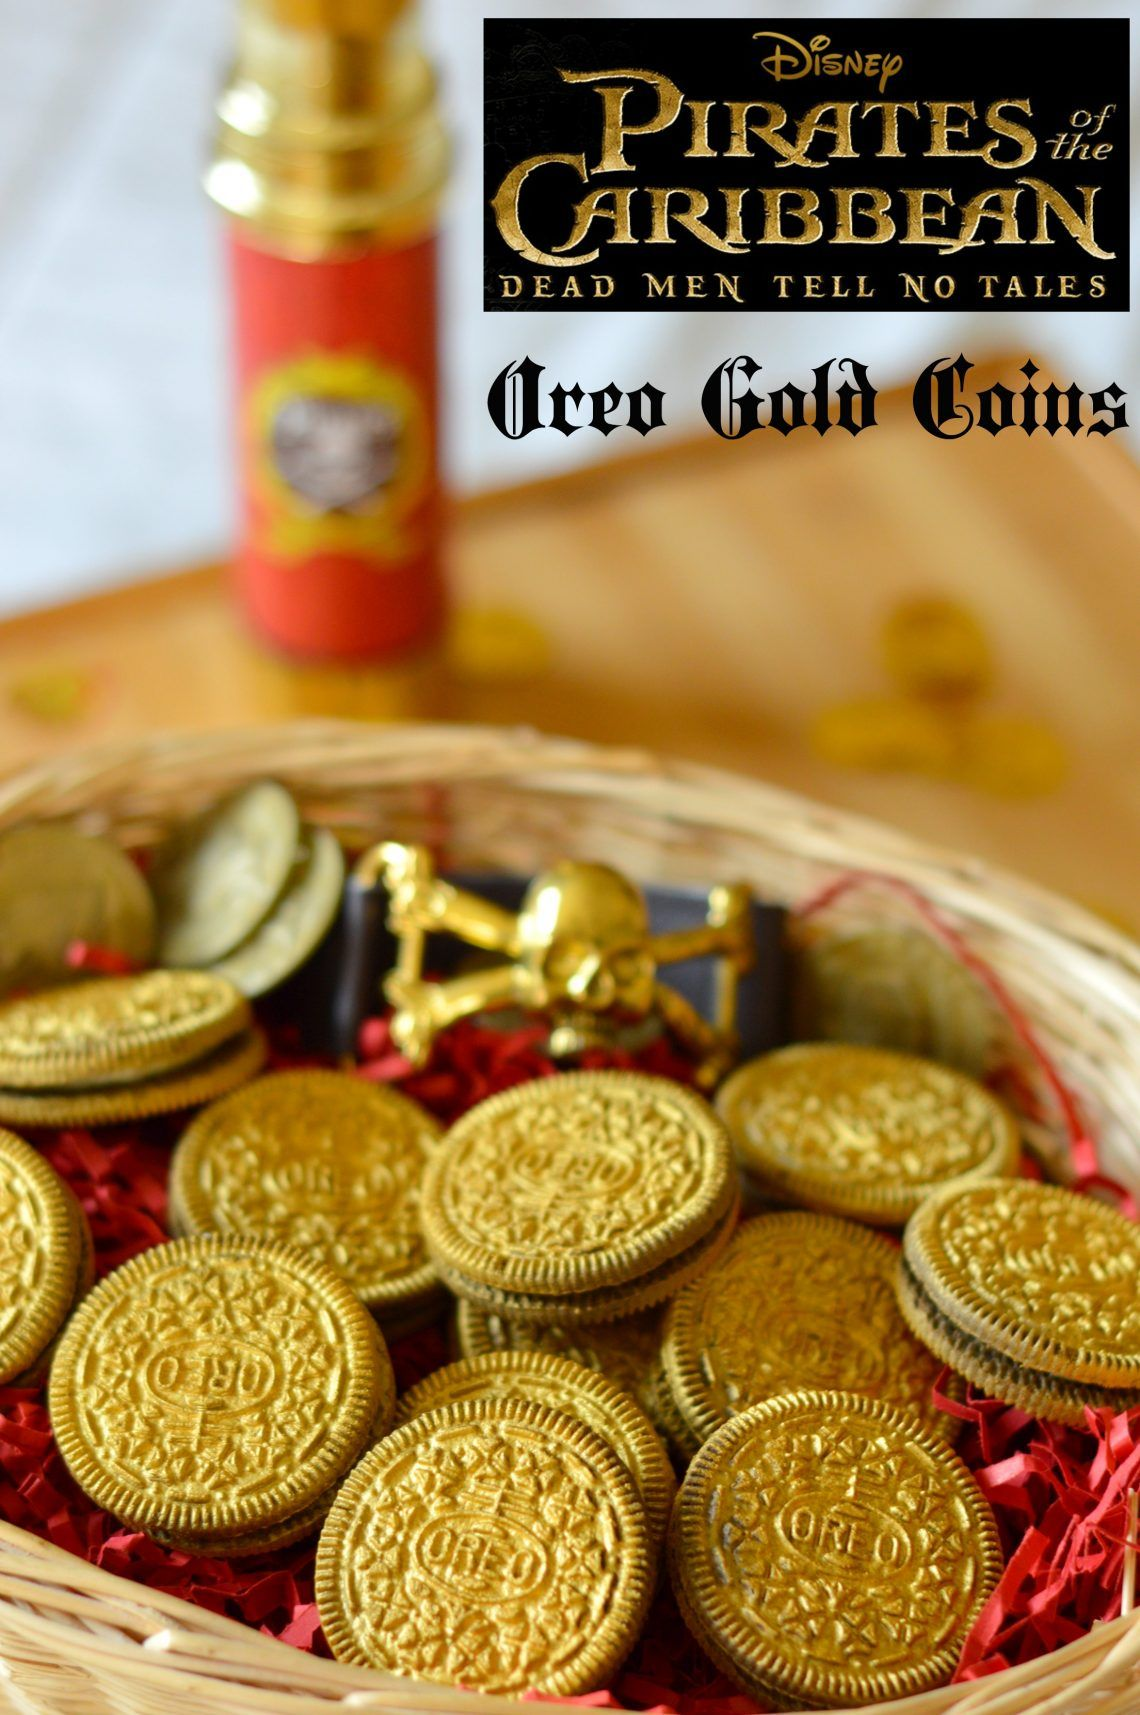 Pirates Of The Caribbean: Dead Men Tell No Tales Edible Gold Coin & Activity Sheets